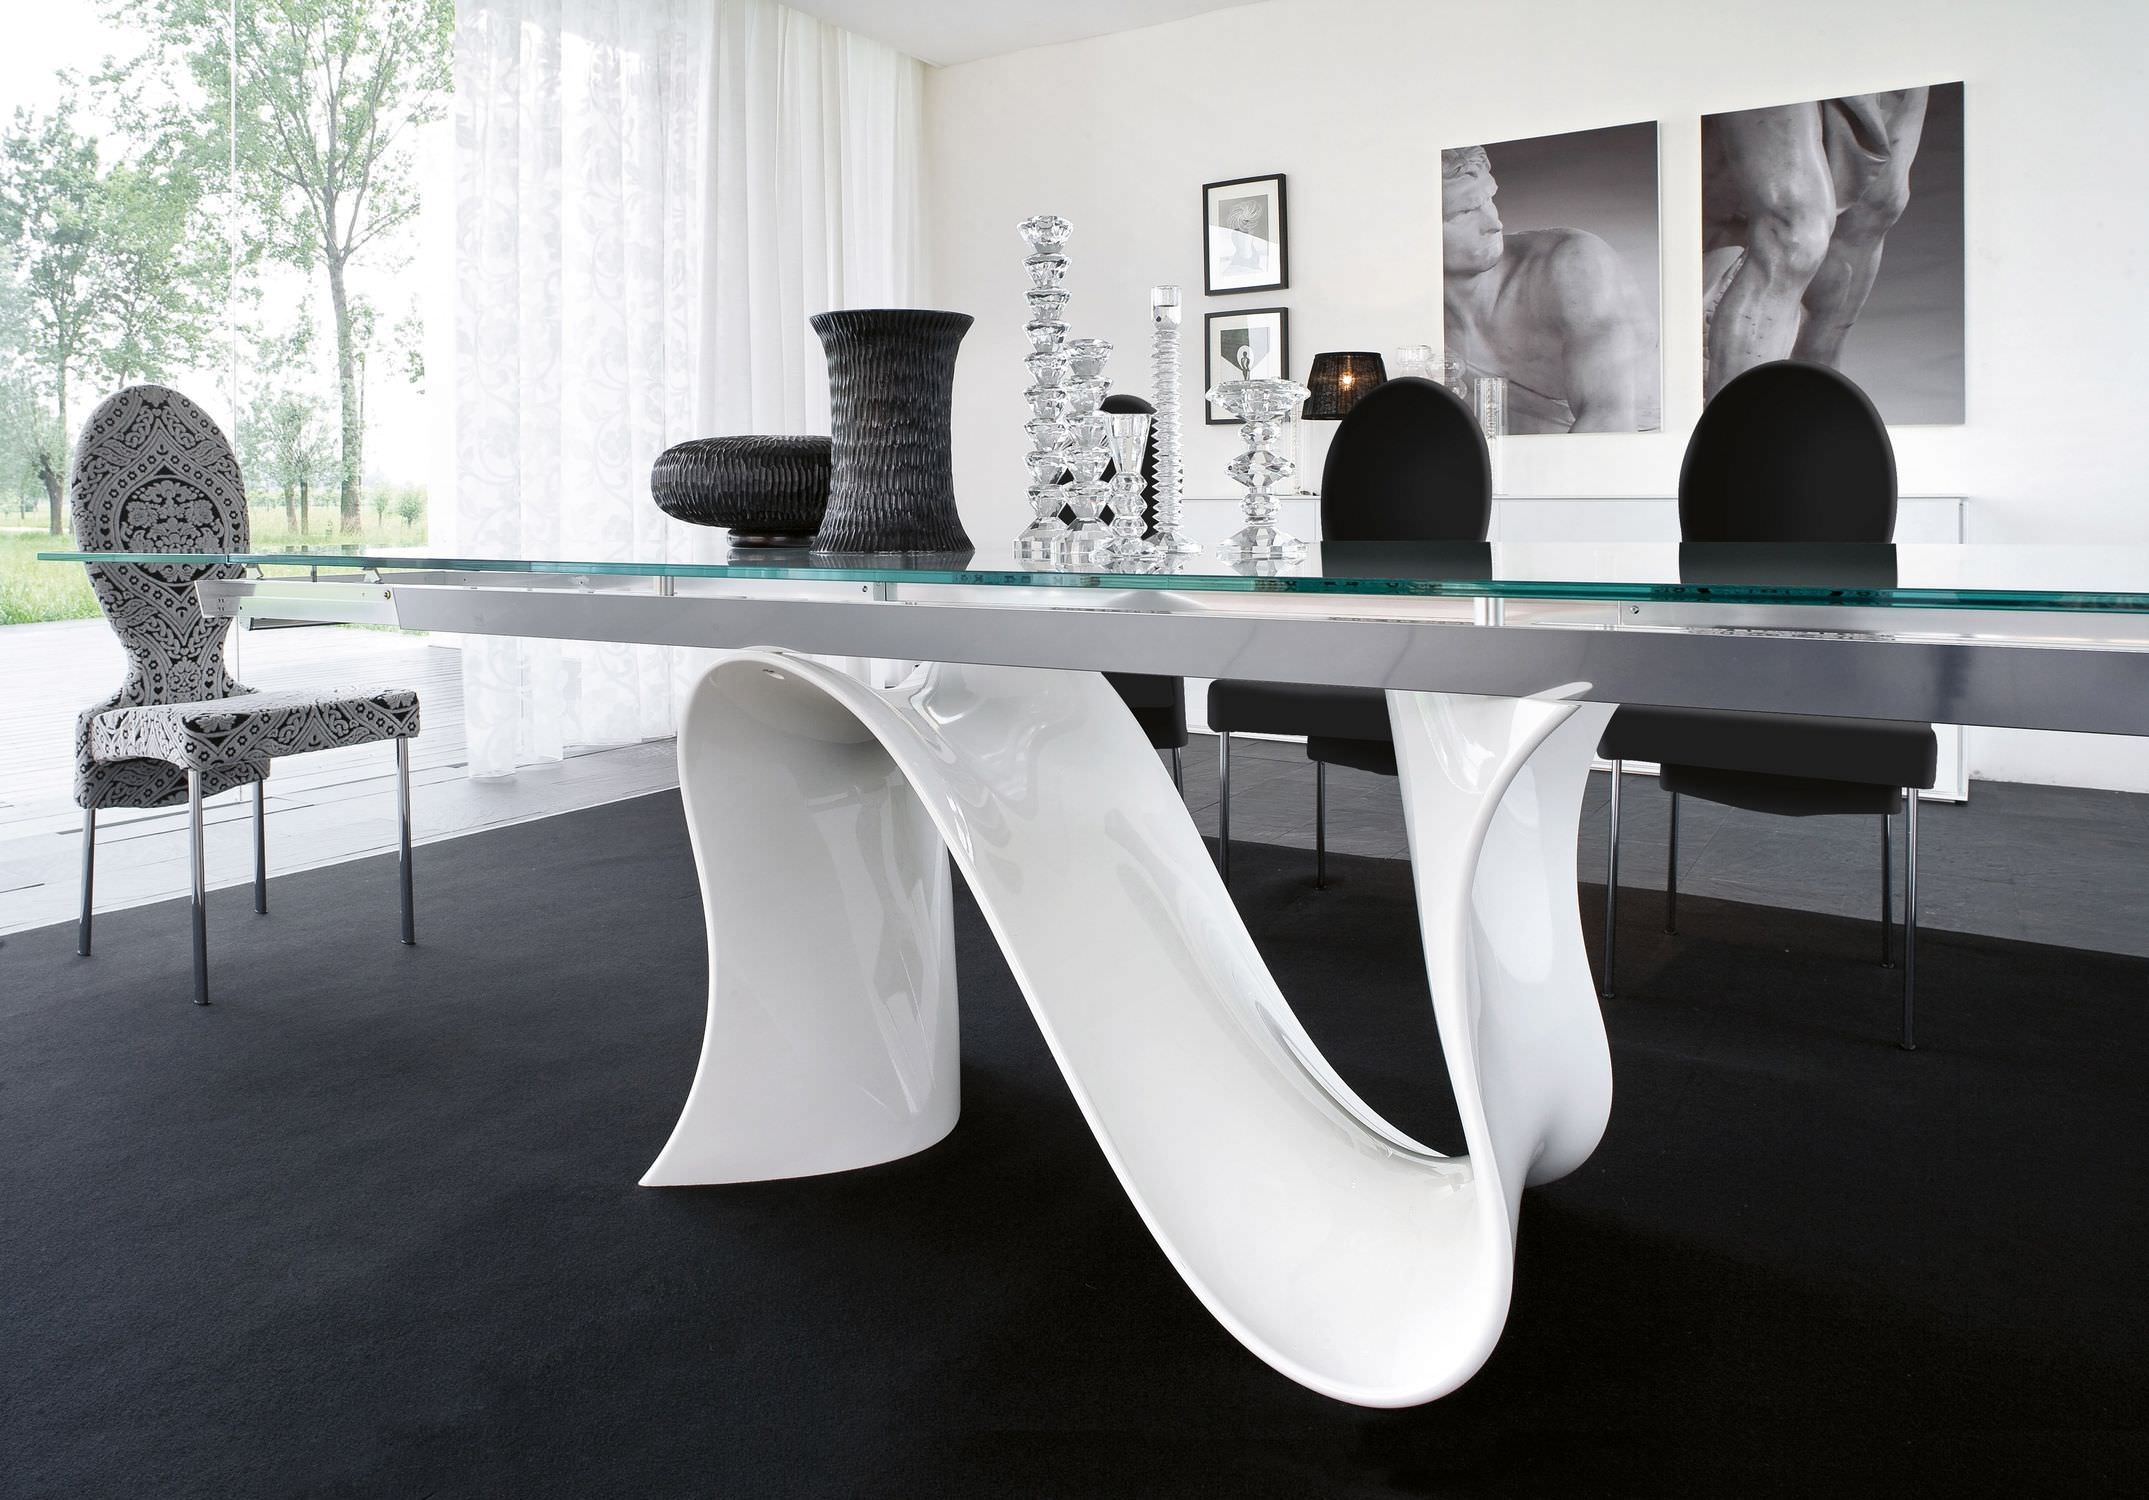 contemporary dining table design kitchen table las vegas Unbelievable Contemporary Dining Table Design Image 11 of 11